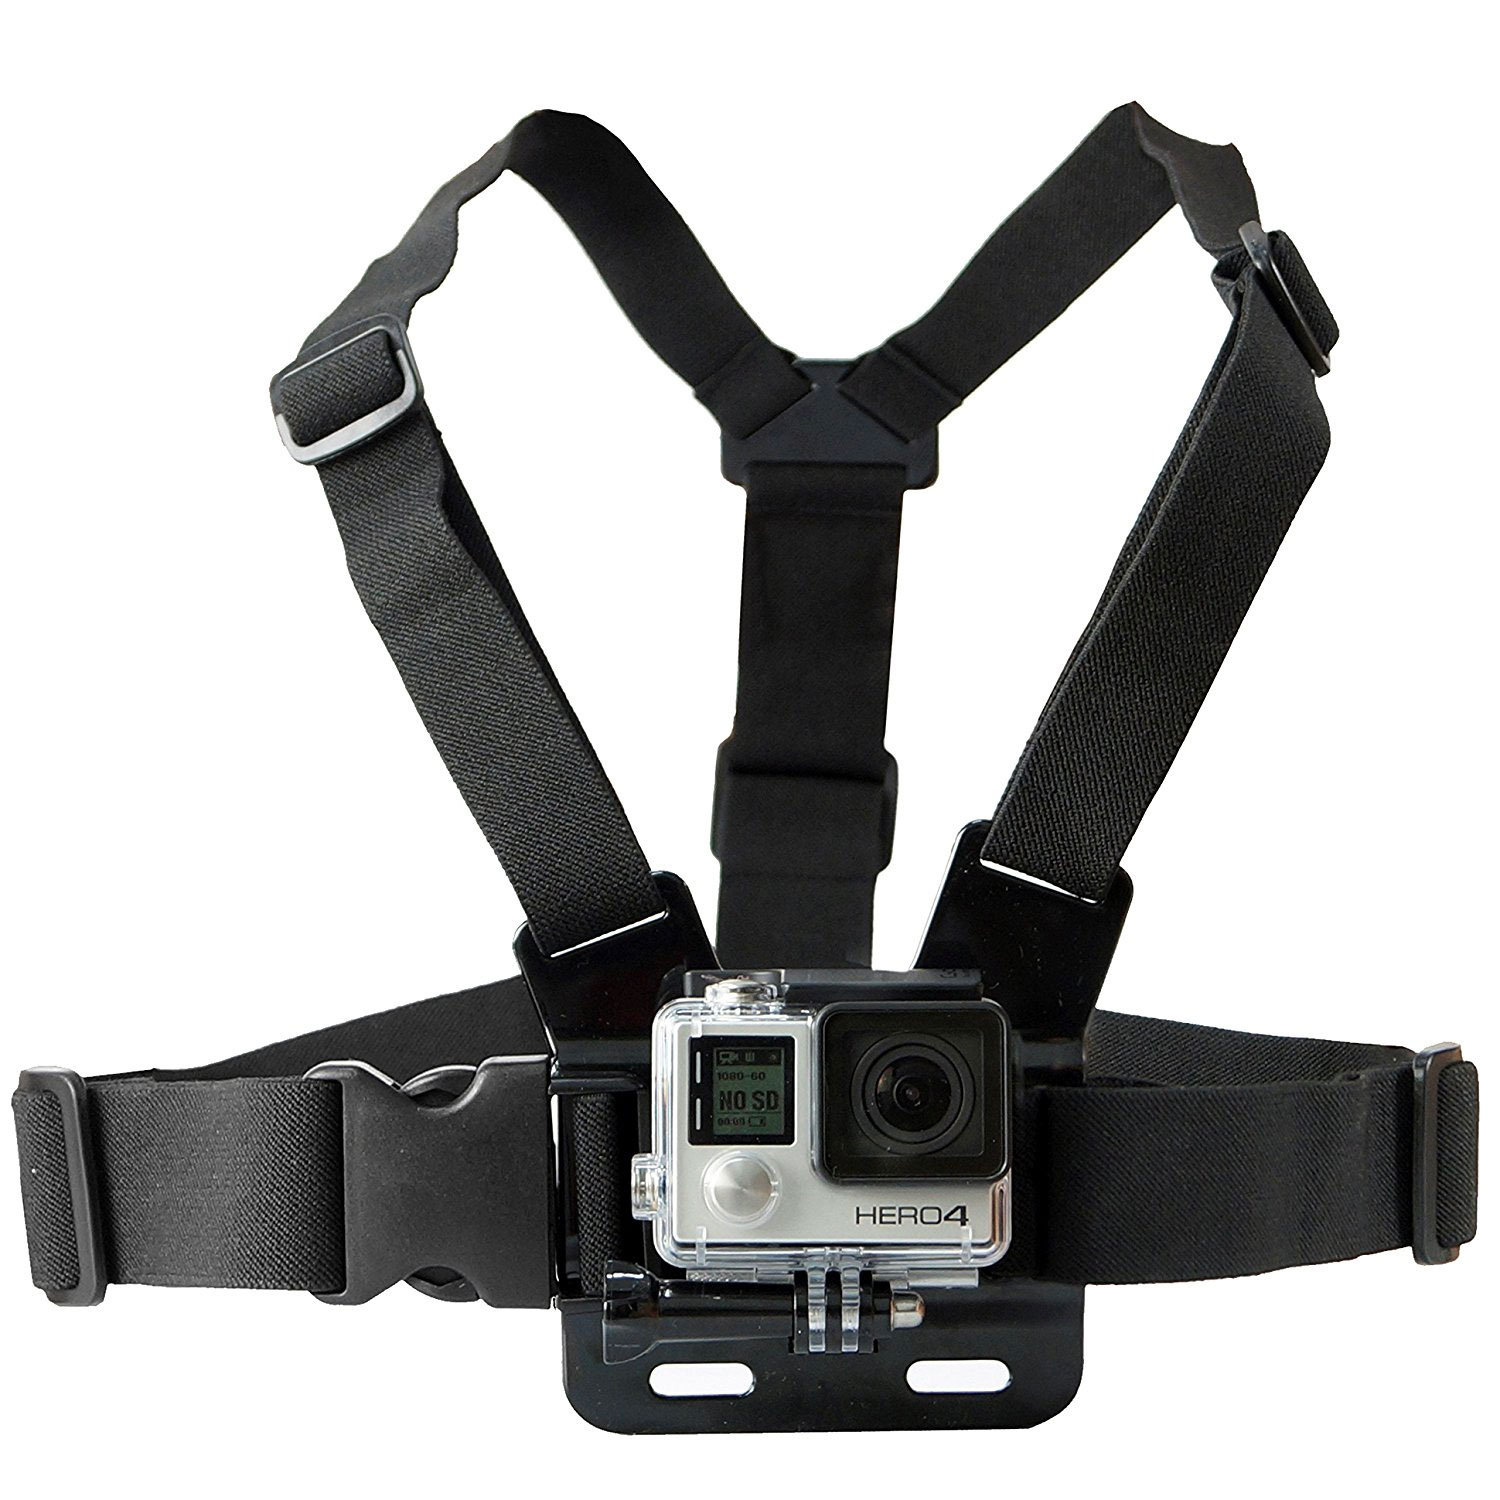 The Pixel Hub: Ultimaxx Adjustable Chest Mount Harness For All GoPro